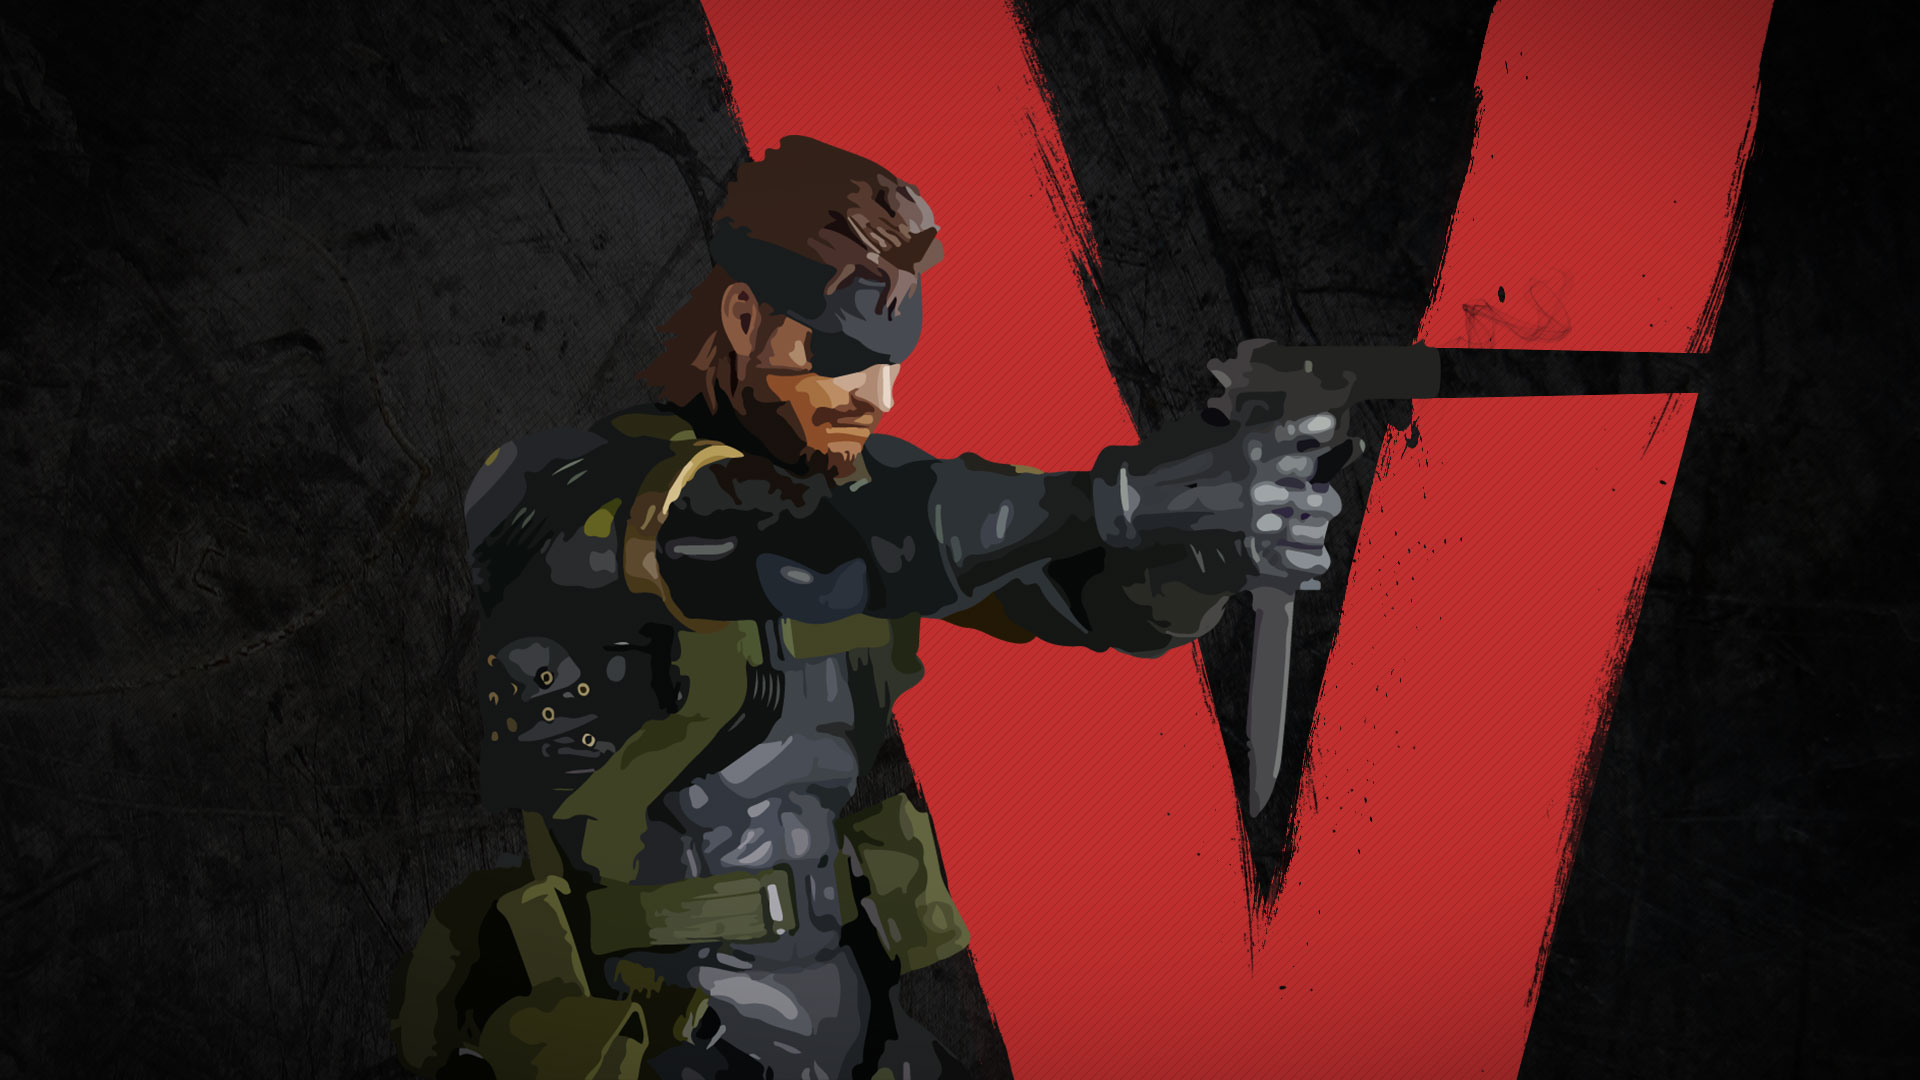 Metal Gear Solid 5 Big Boss Wallpapers Benjamin Stratton